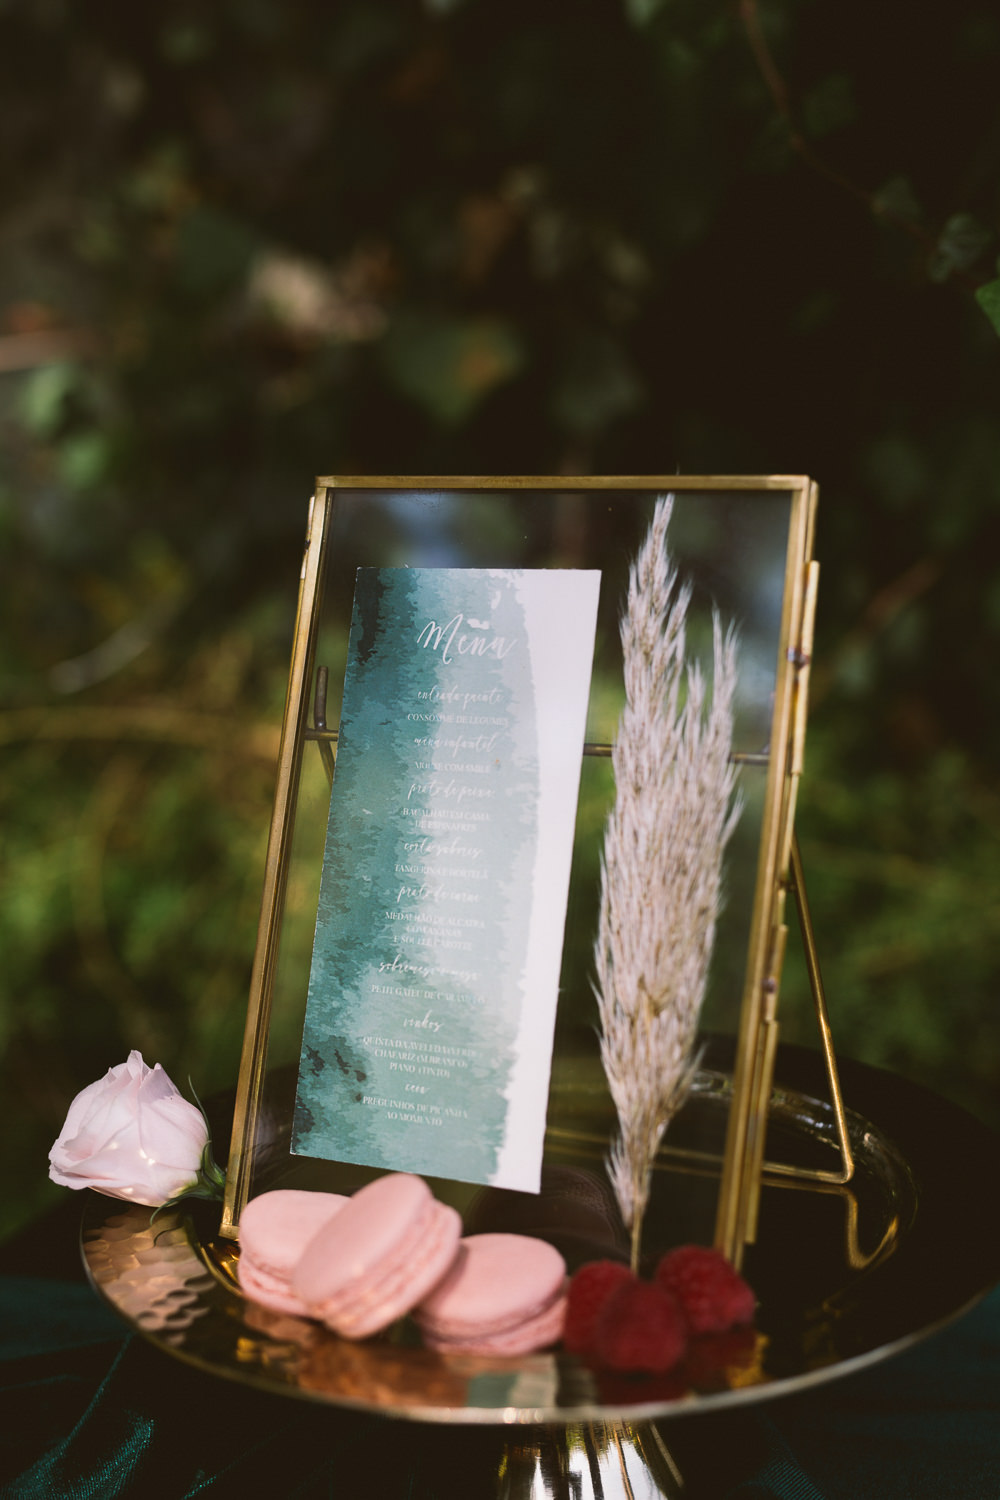 Watercolour Stationery Invitations Invites Suite Sign Frame Botanical Dark Green Velvet Pampas Grass Wedding Ideas Bárbara Araújo Photography